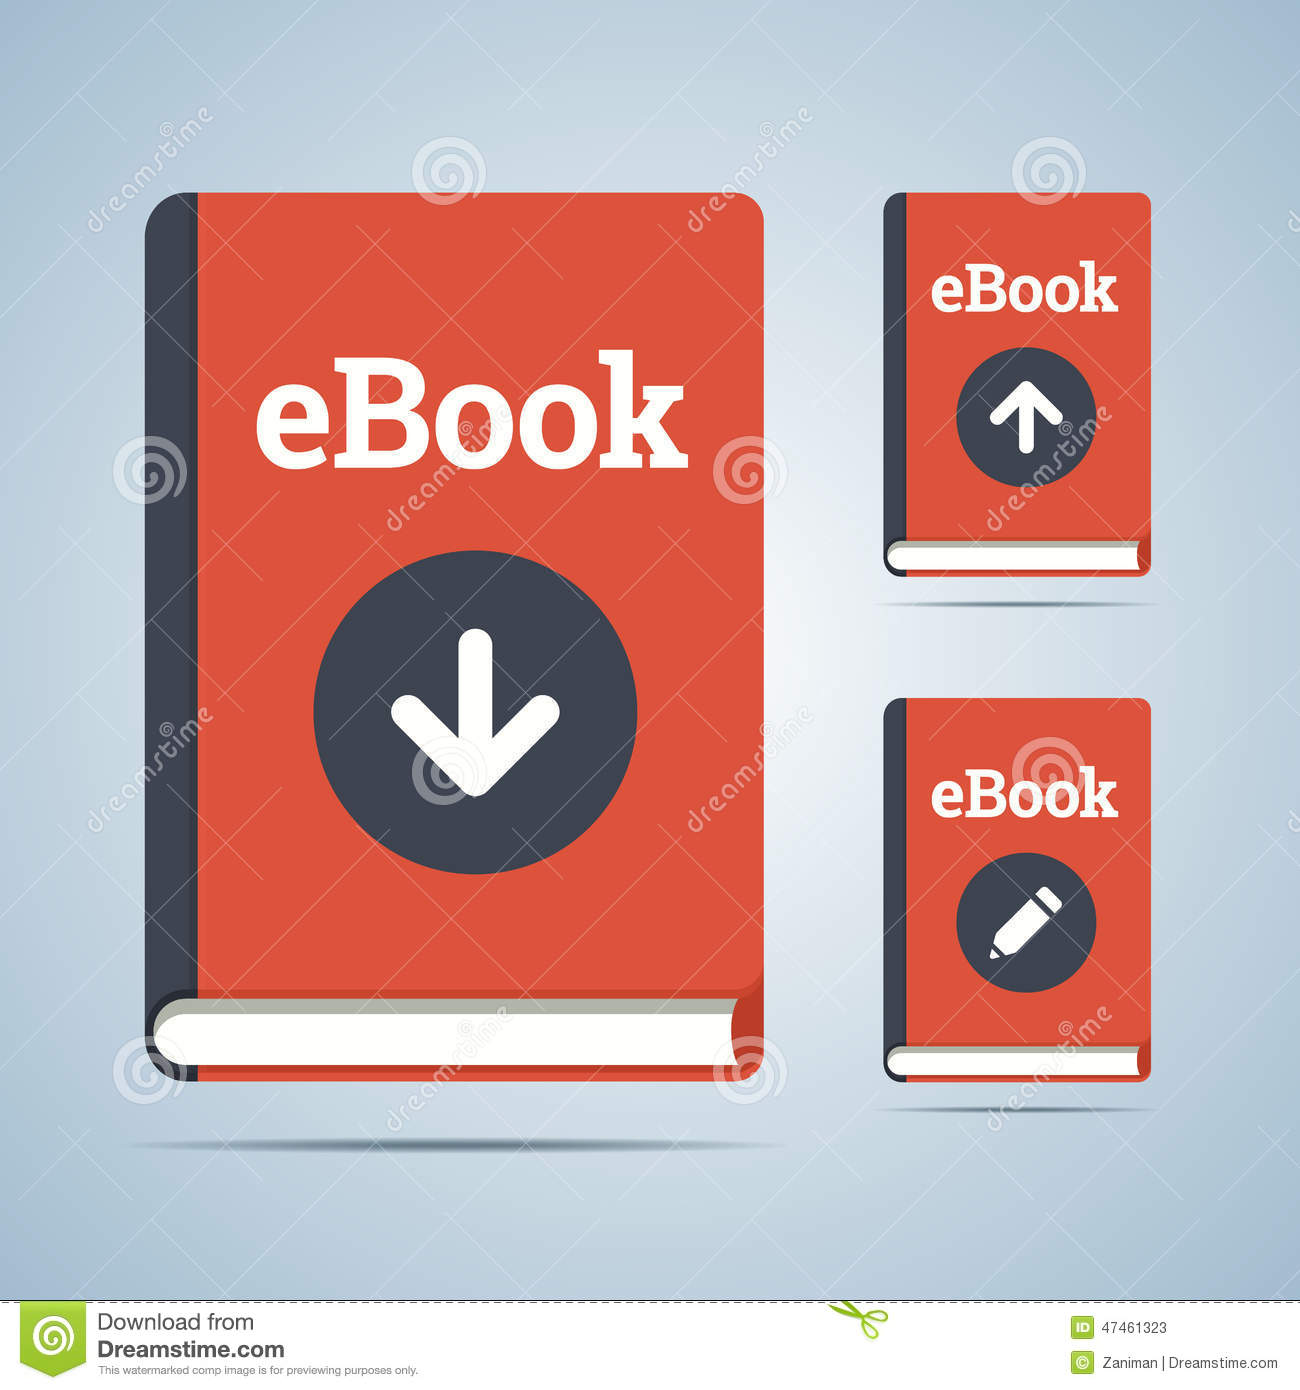 How to edit an ebook